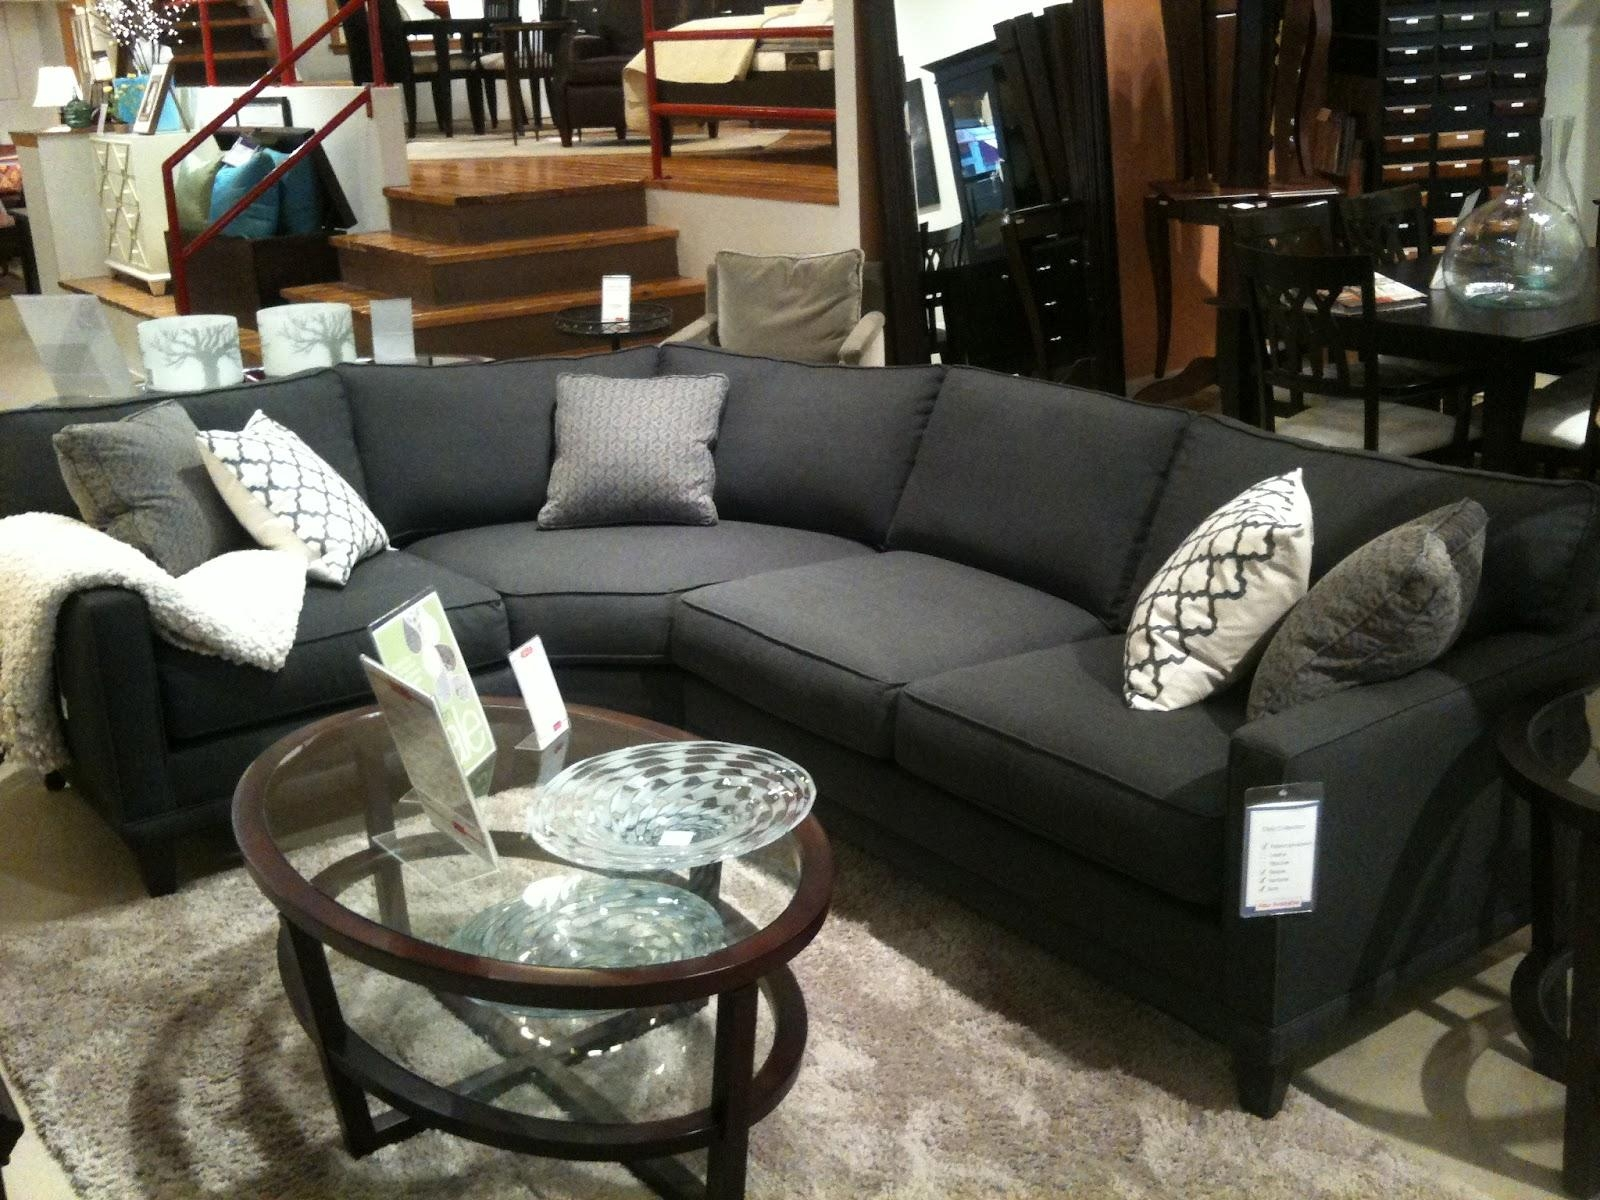 ashford sofa boston interiors hamilton rockville outlet locations brokeasshome